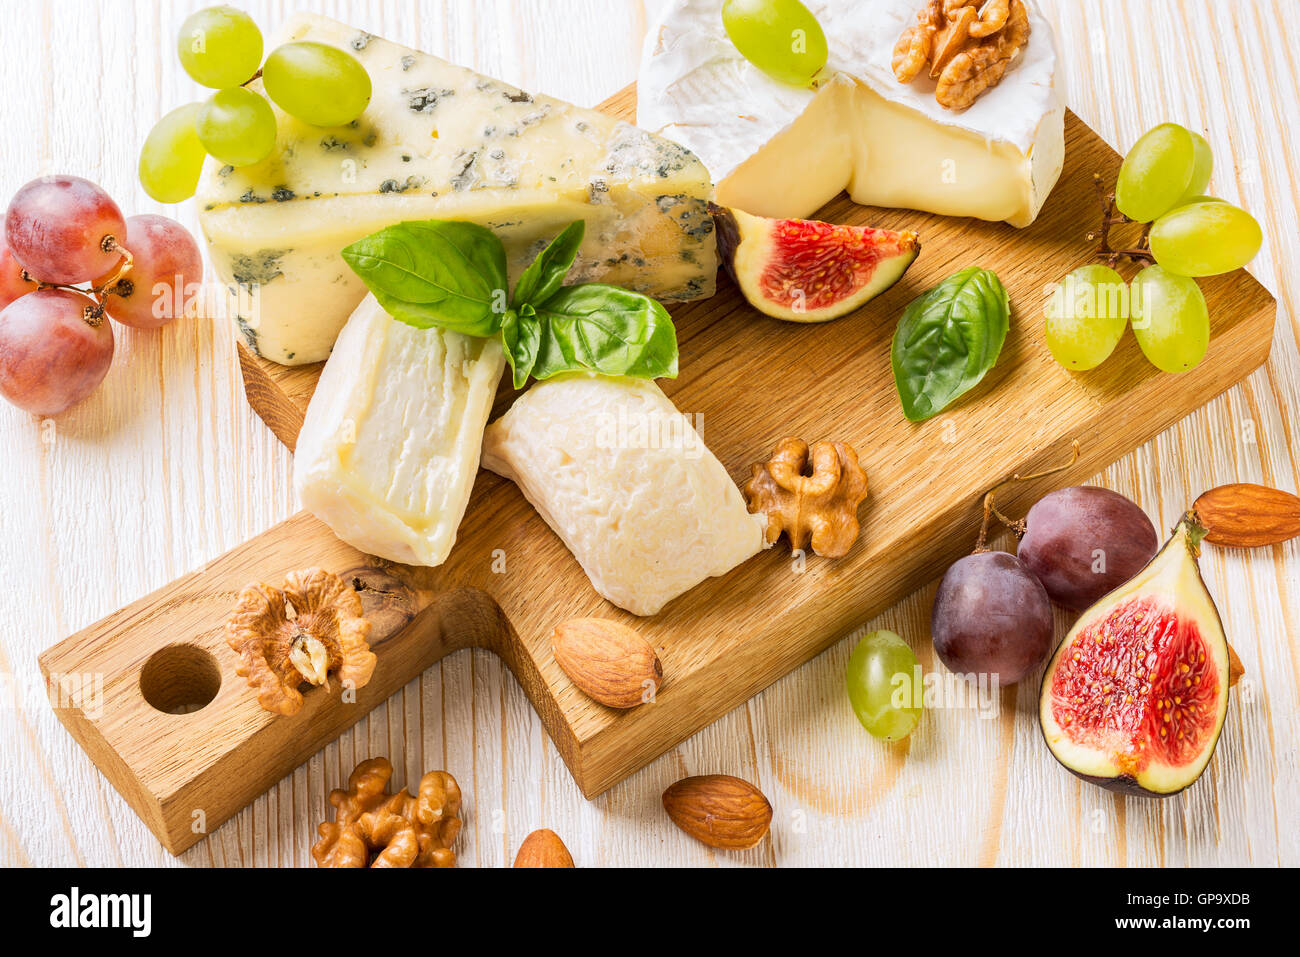 Cheese platter with figs, grapes and nuts - Stock Image